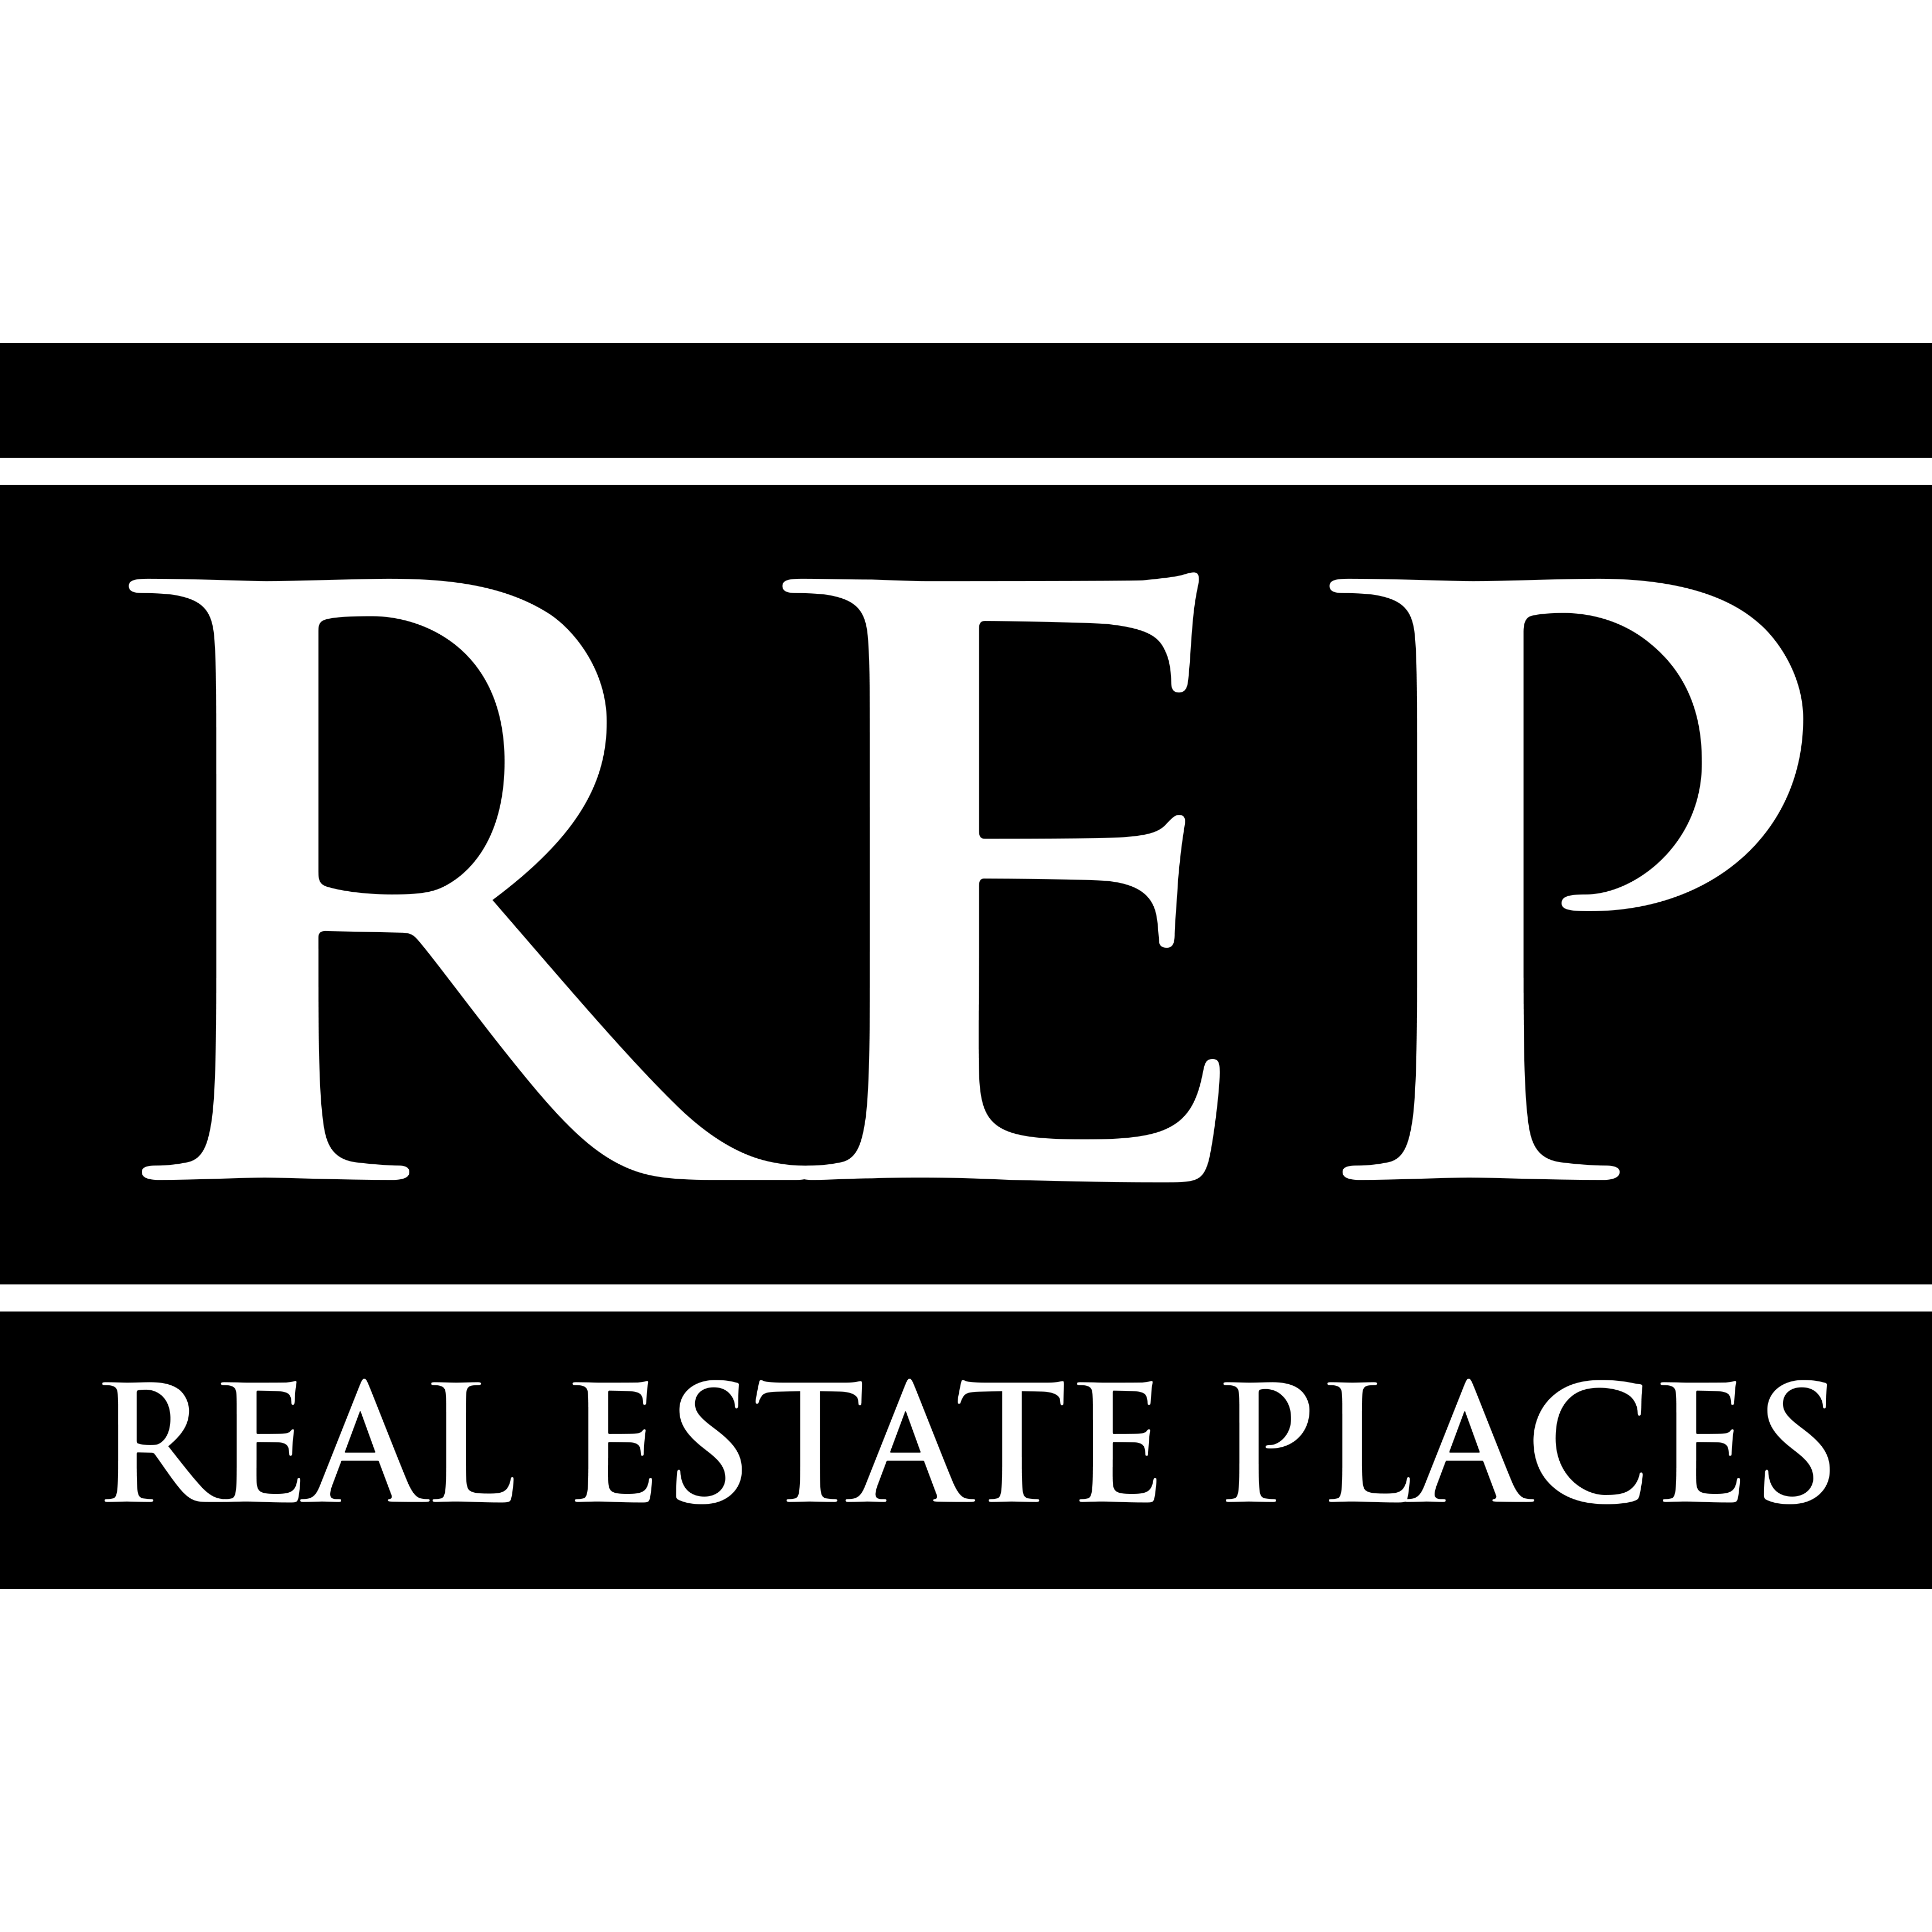 Real Estate Places